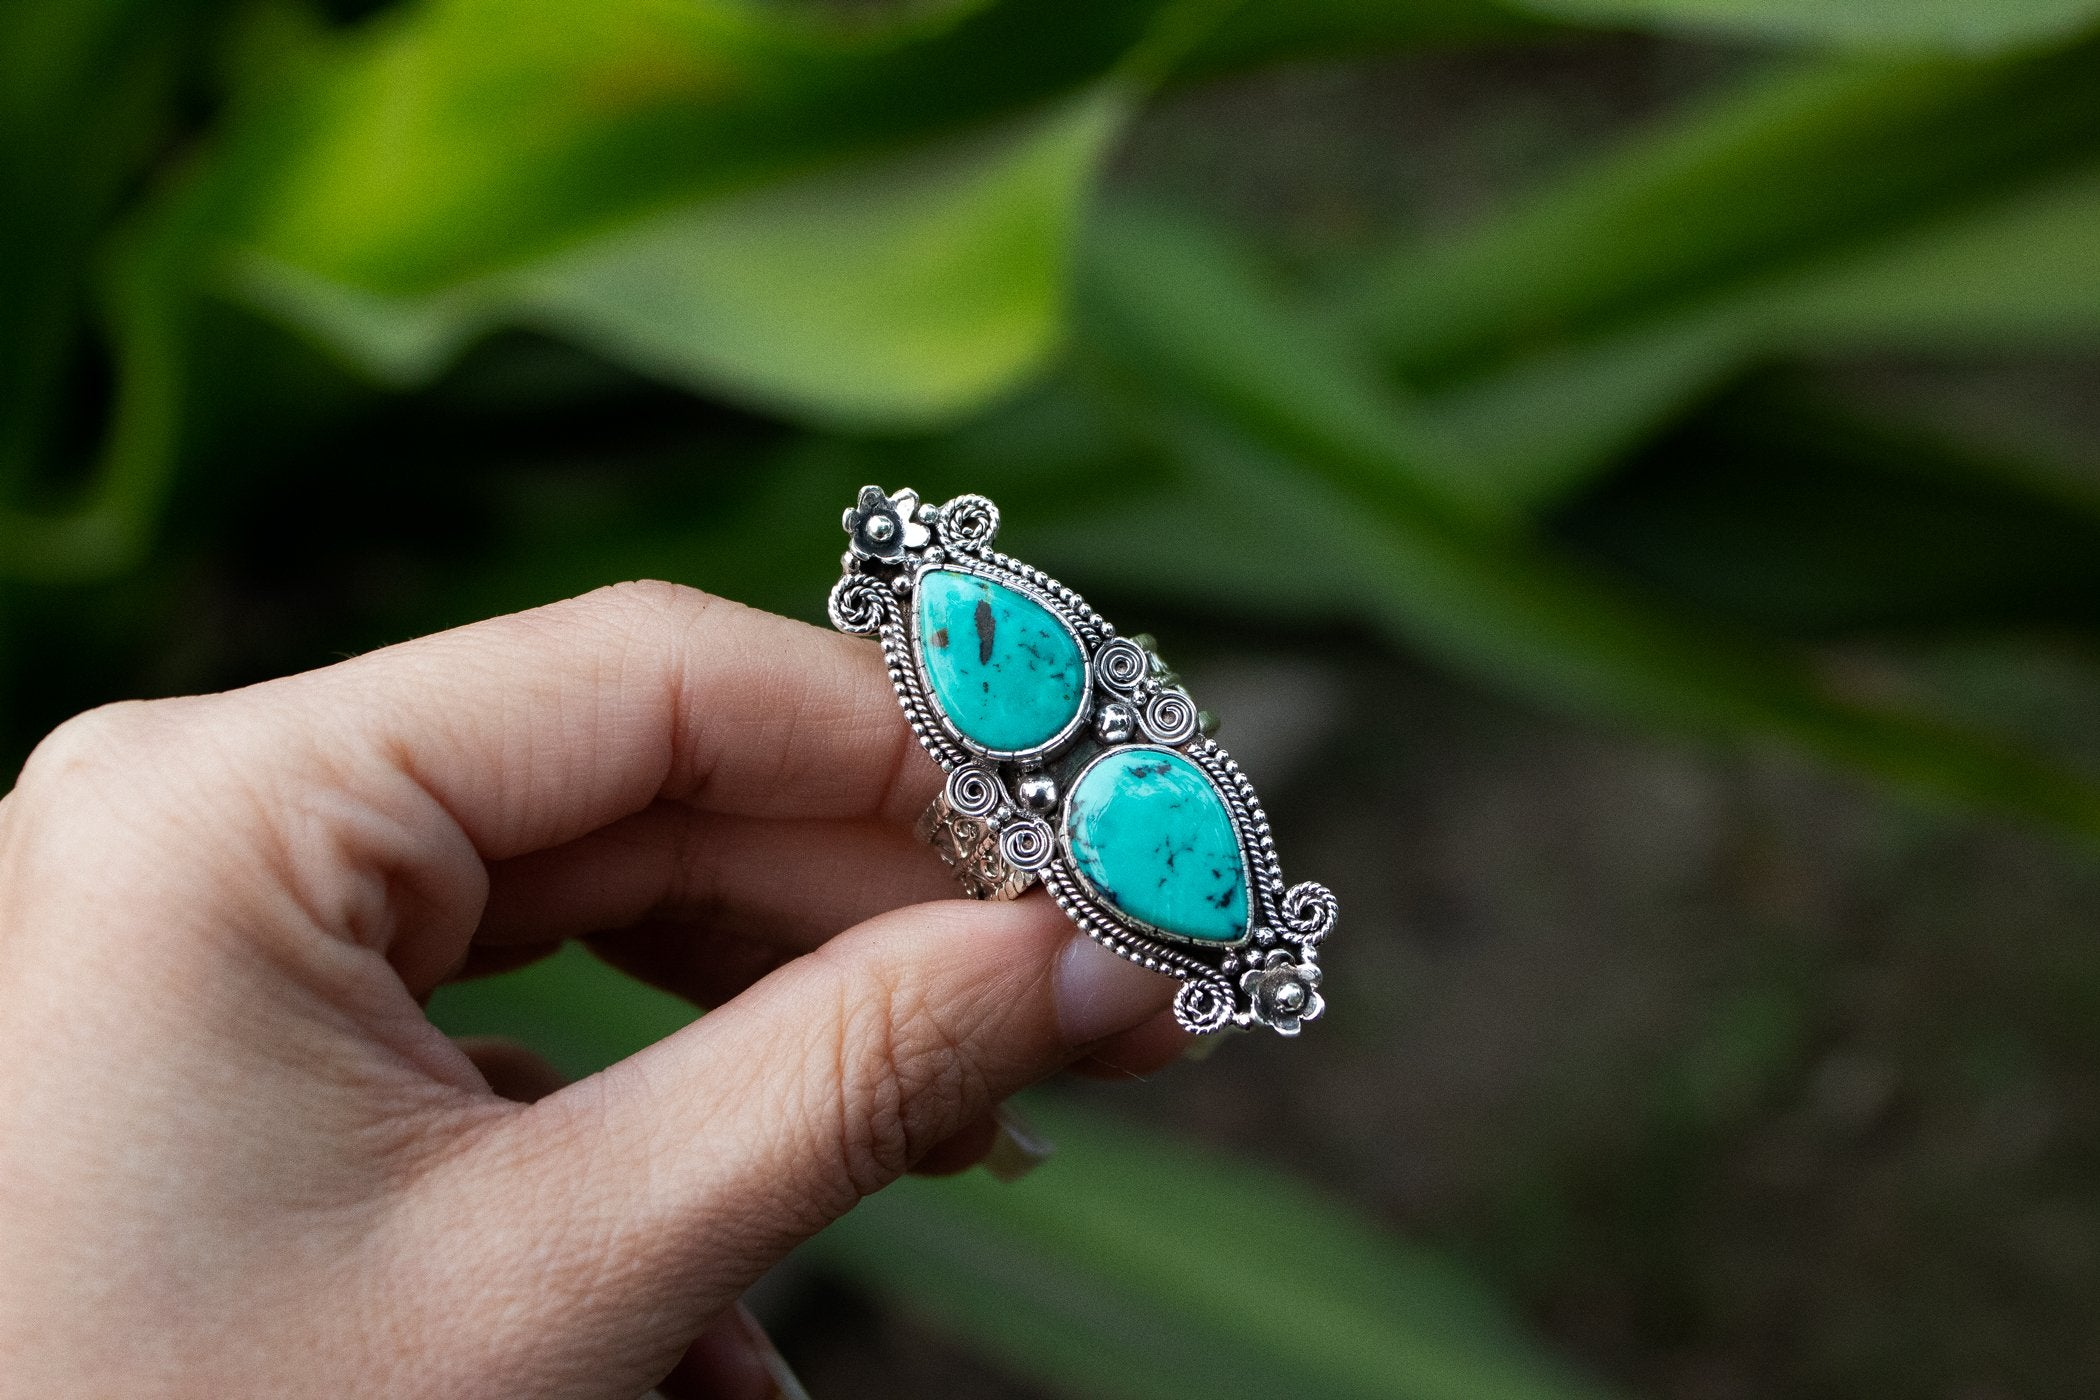 Handmade 925 Sterling Silver Turquoise Ring AR-3013 - Its Ambra